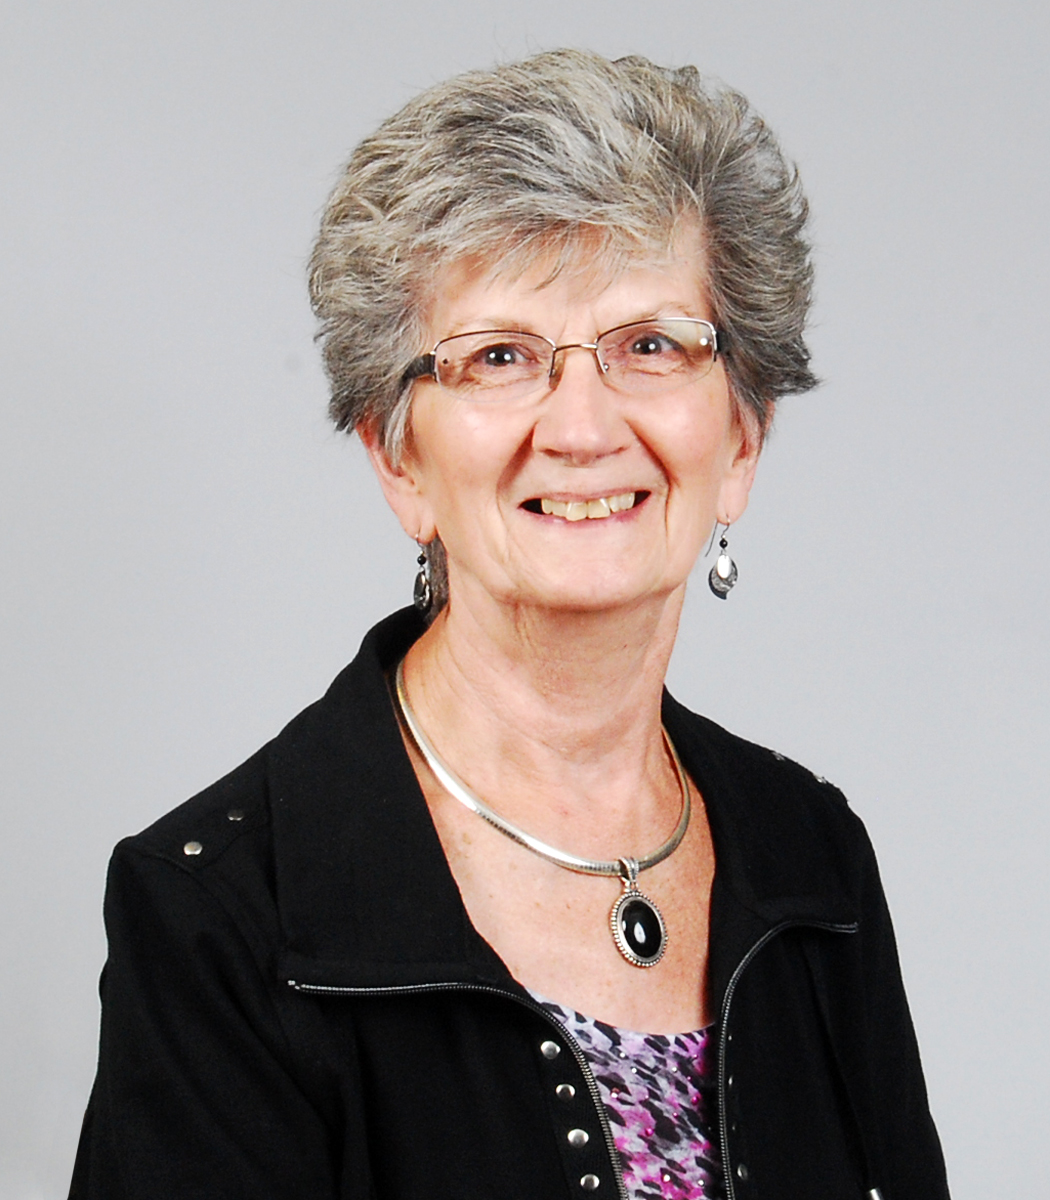 Mary S. Austin - Board Member - NAEIR